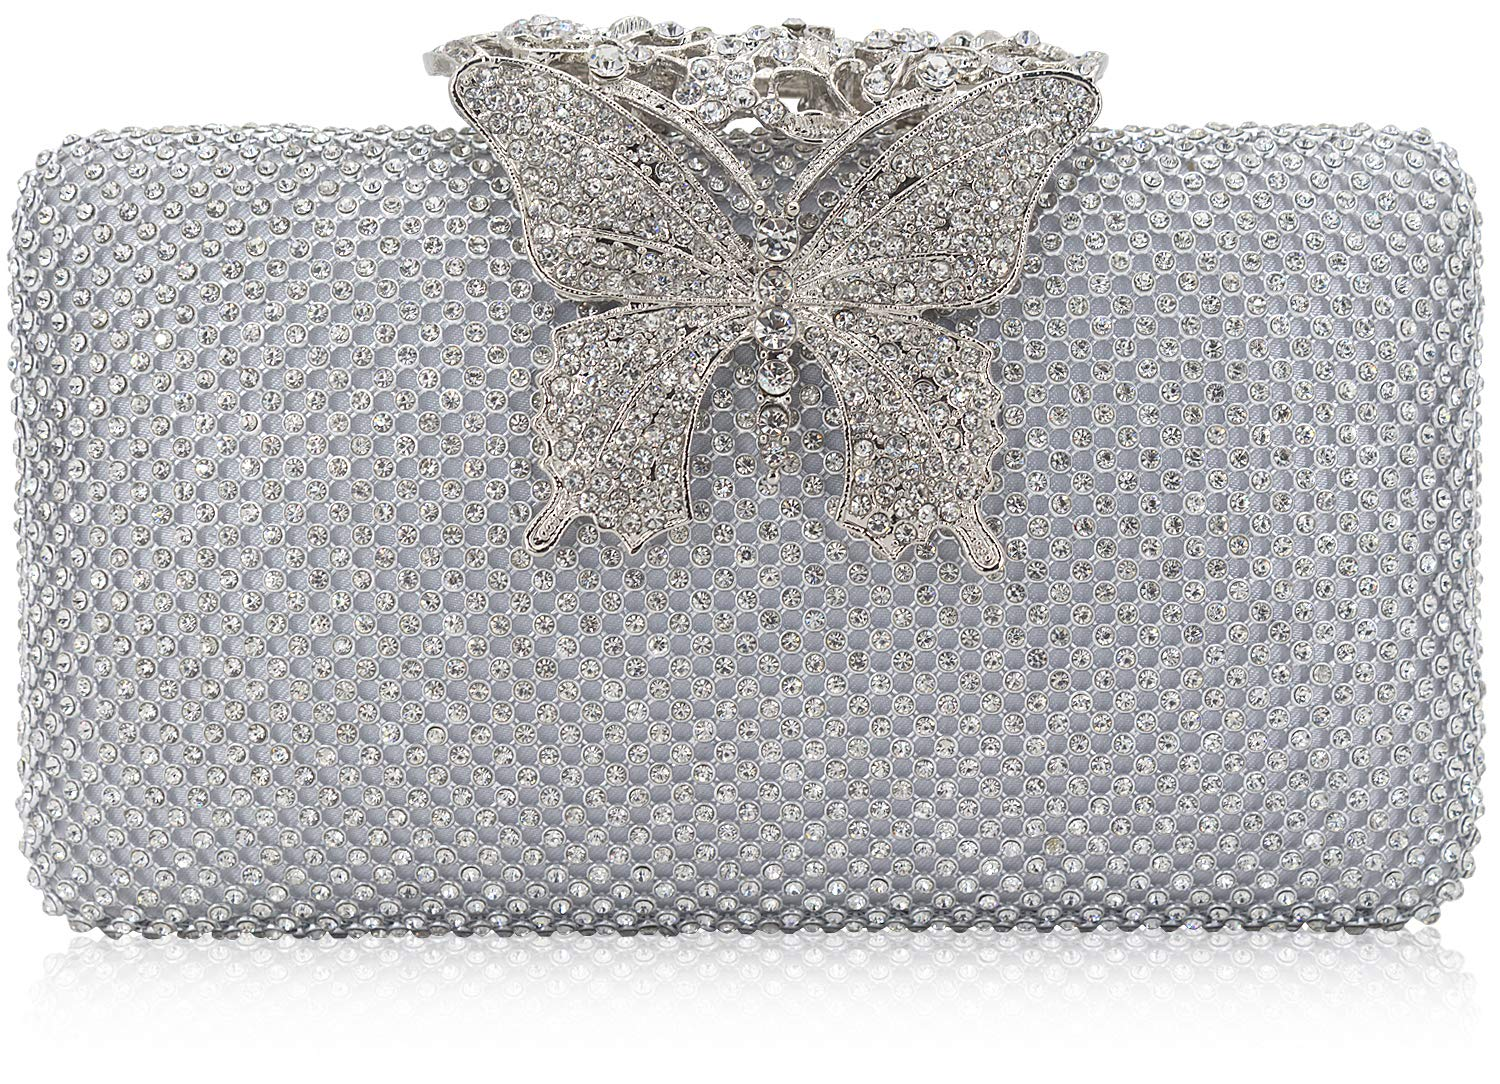 Dexmay Rhinestone Crystal Clutch Purse Butterfly Clasp Women Evening Bag for Formal Party Silver by DEXMAY DM (Image #1)